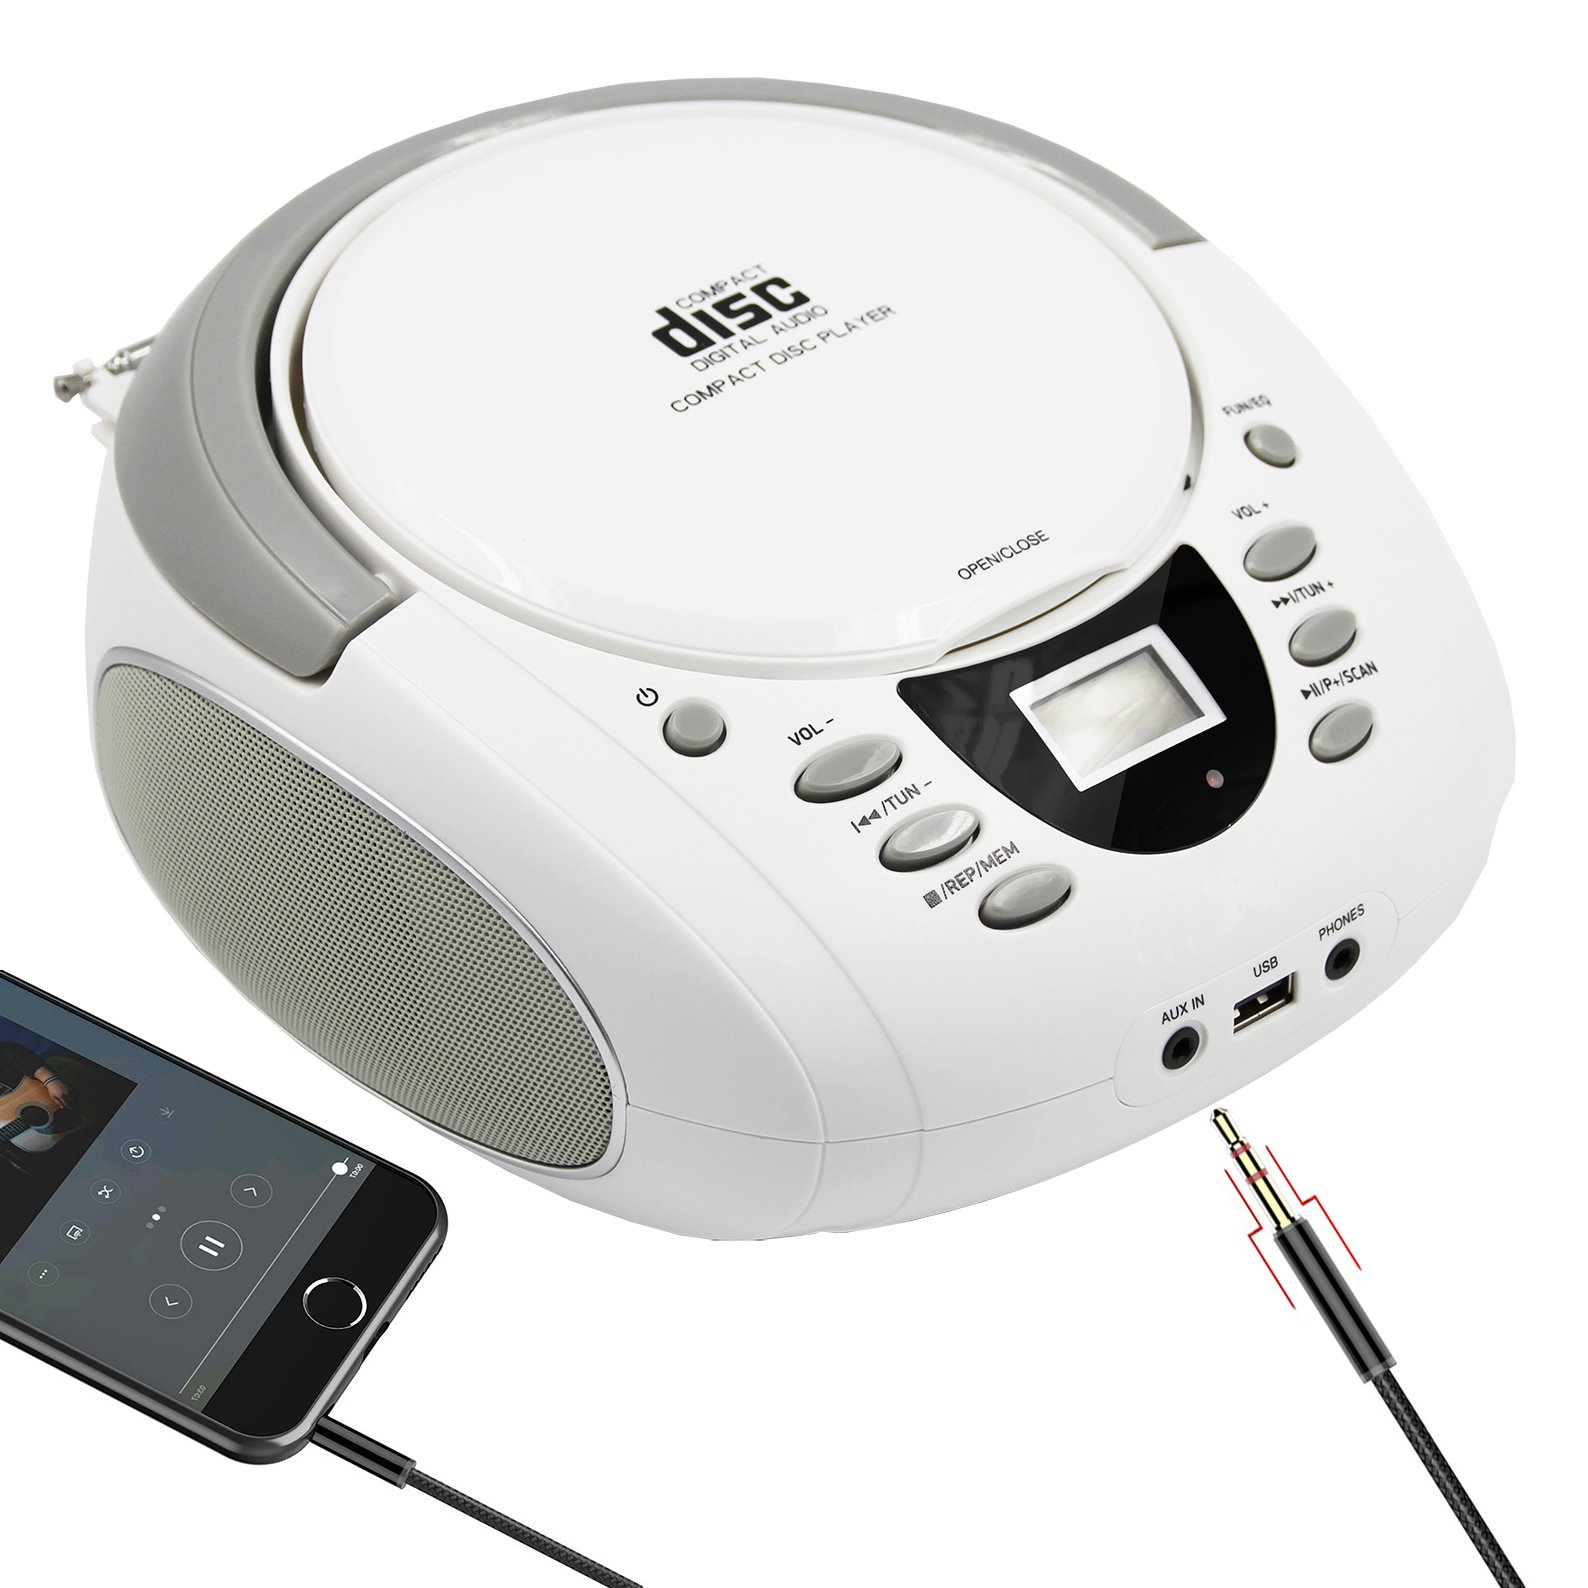 LONPOO Portable CD Player Boombox Bluetooth Stereo MP3 / CD Player with FM Radio, Aux-in & USB & Headphone Jack , AC Power and DC Battery (Batteries are Not Included) by LONPOO